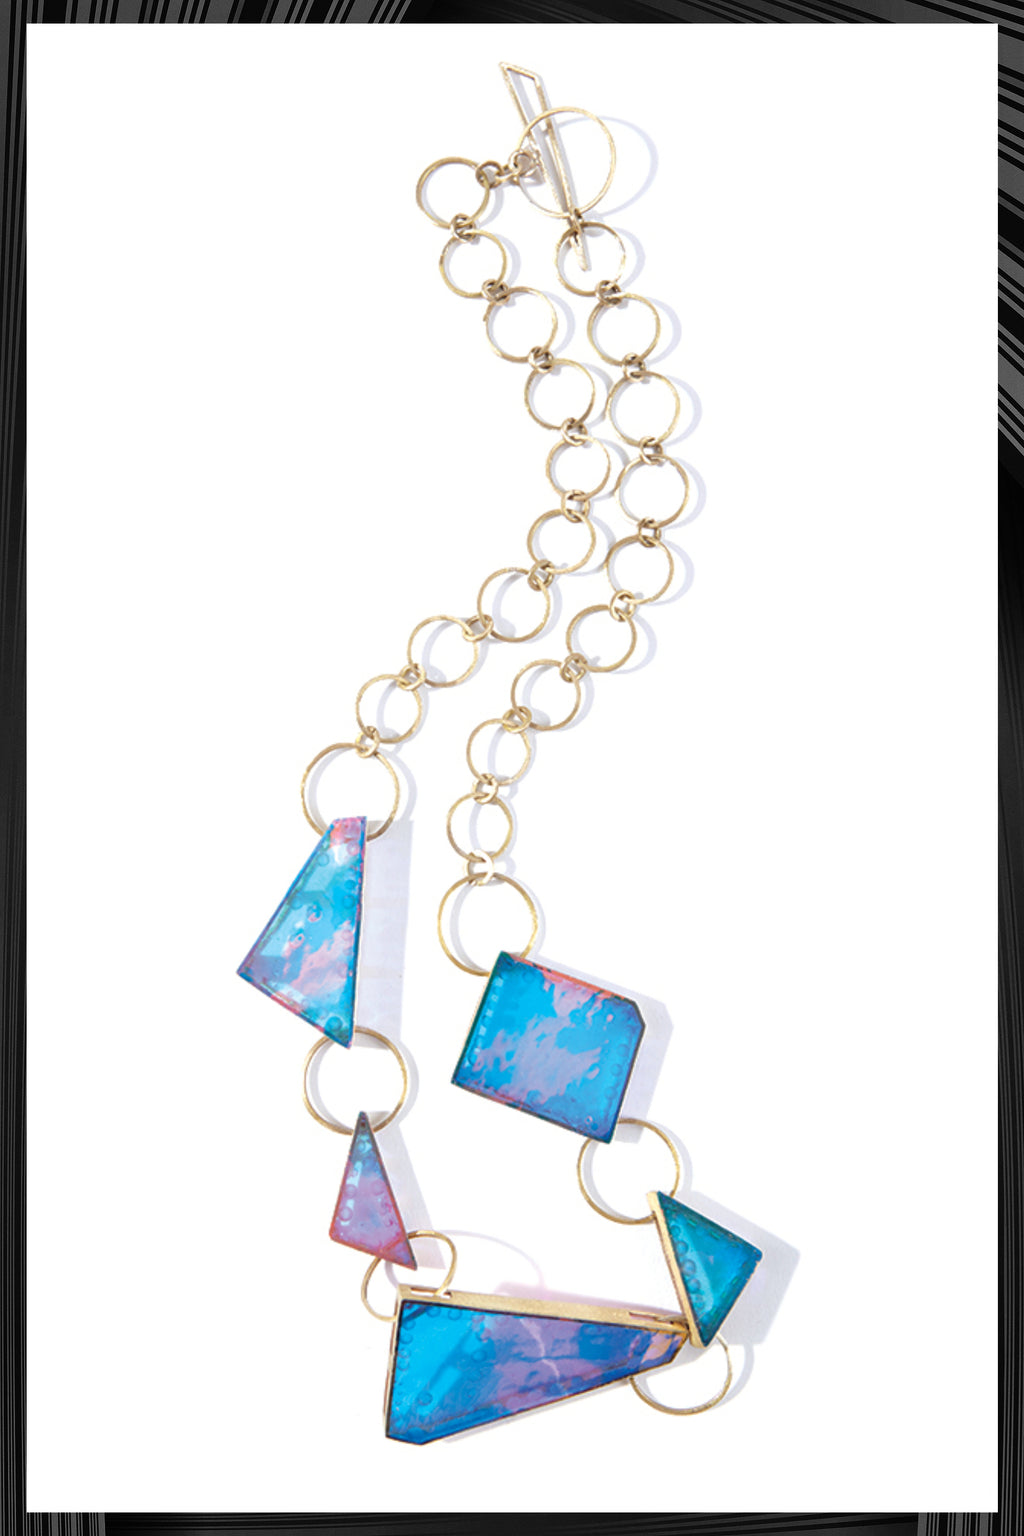 Iridiscencias Necklace | Free Delivery - 2-3 Week Shipping